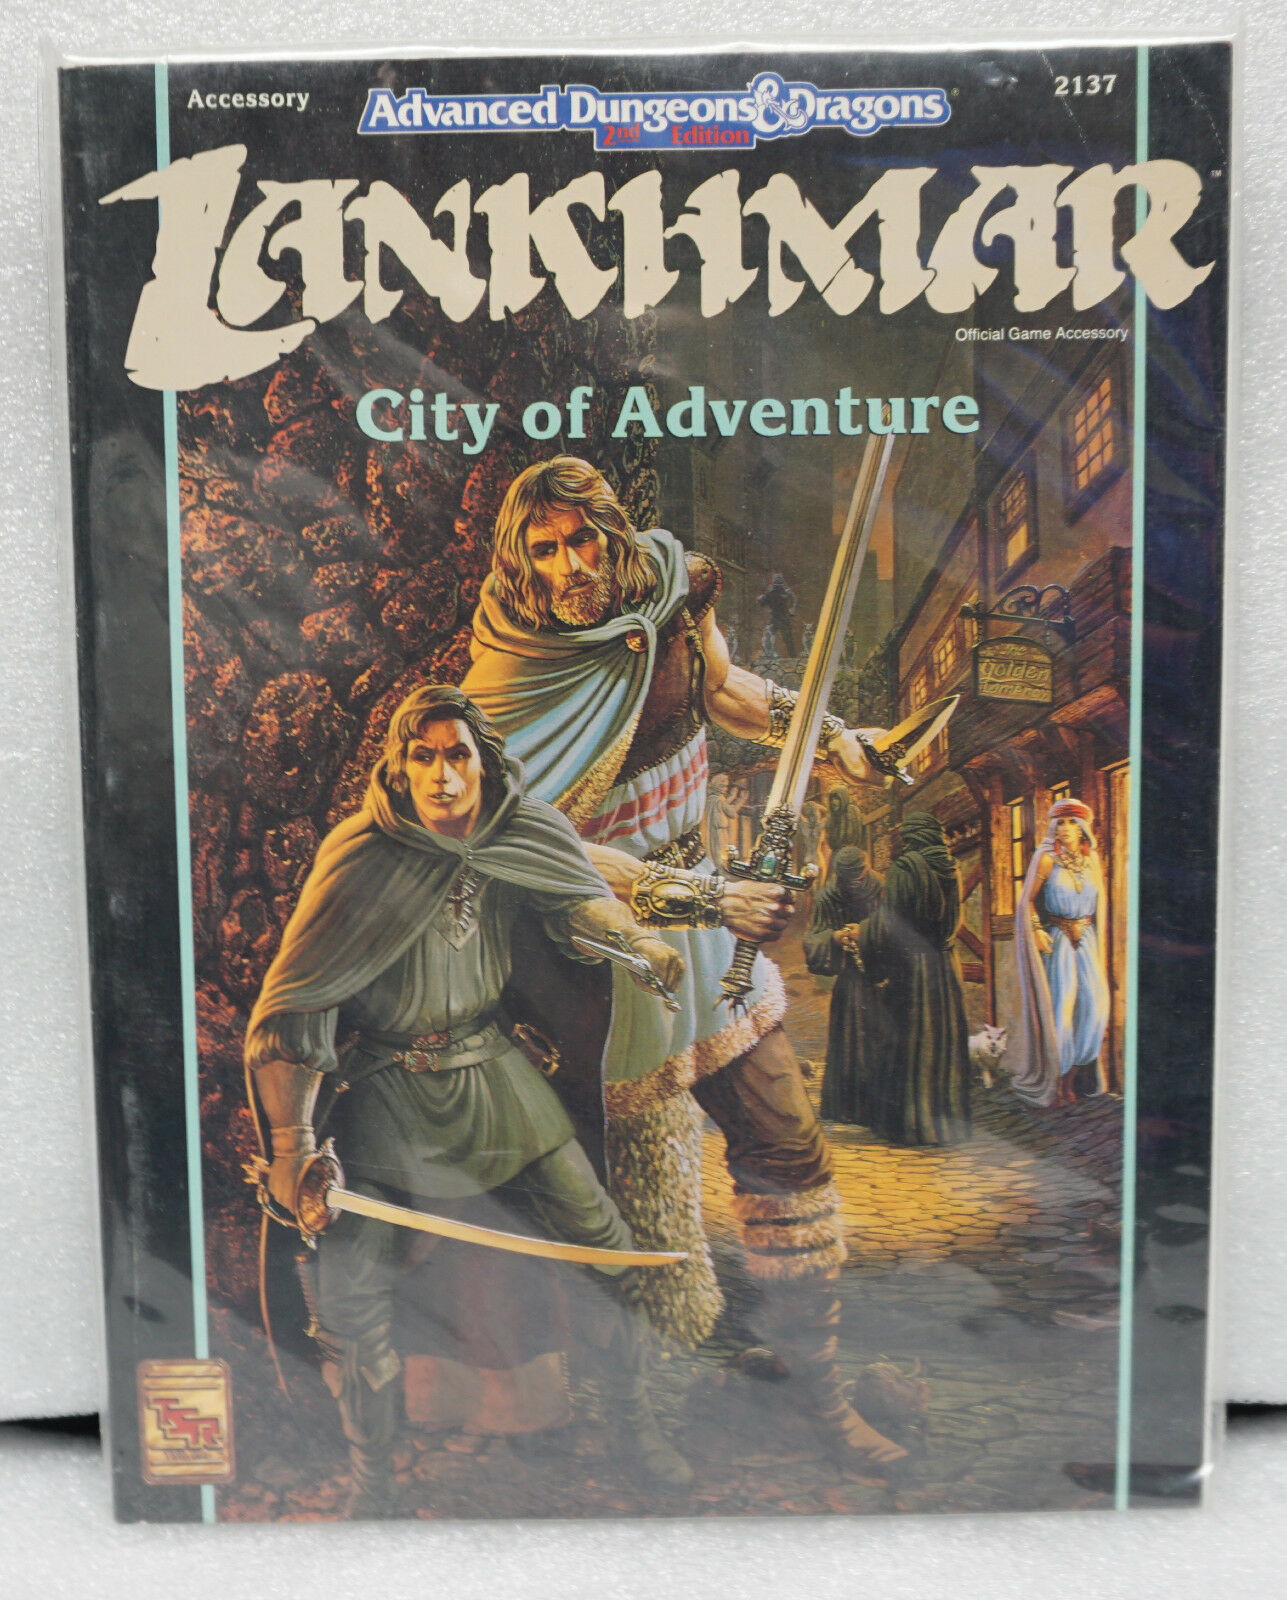 Dungeons & Dragons D&D Lankhmar City of Adventure